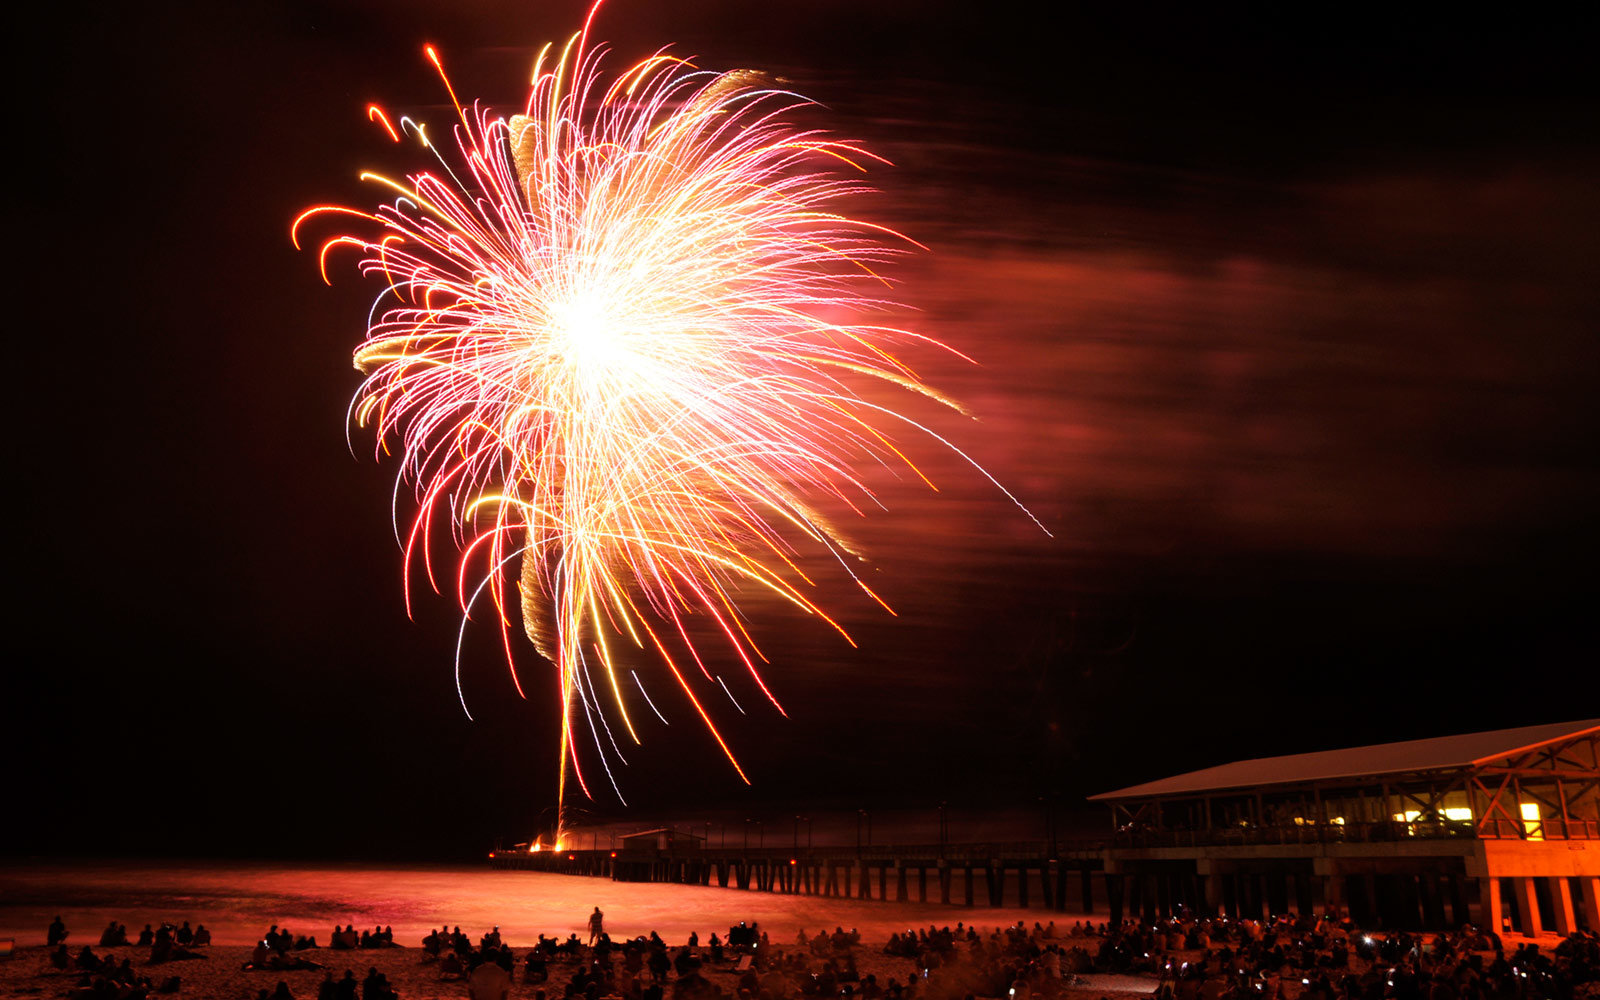 Fireworks, West Beach, Gulf Shores, Alabama